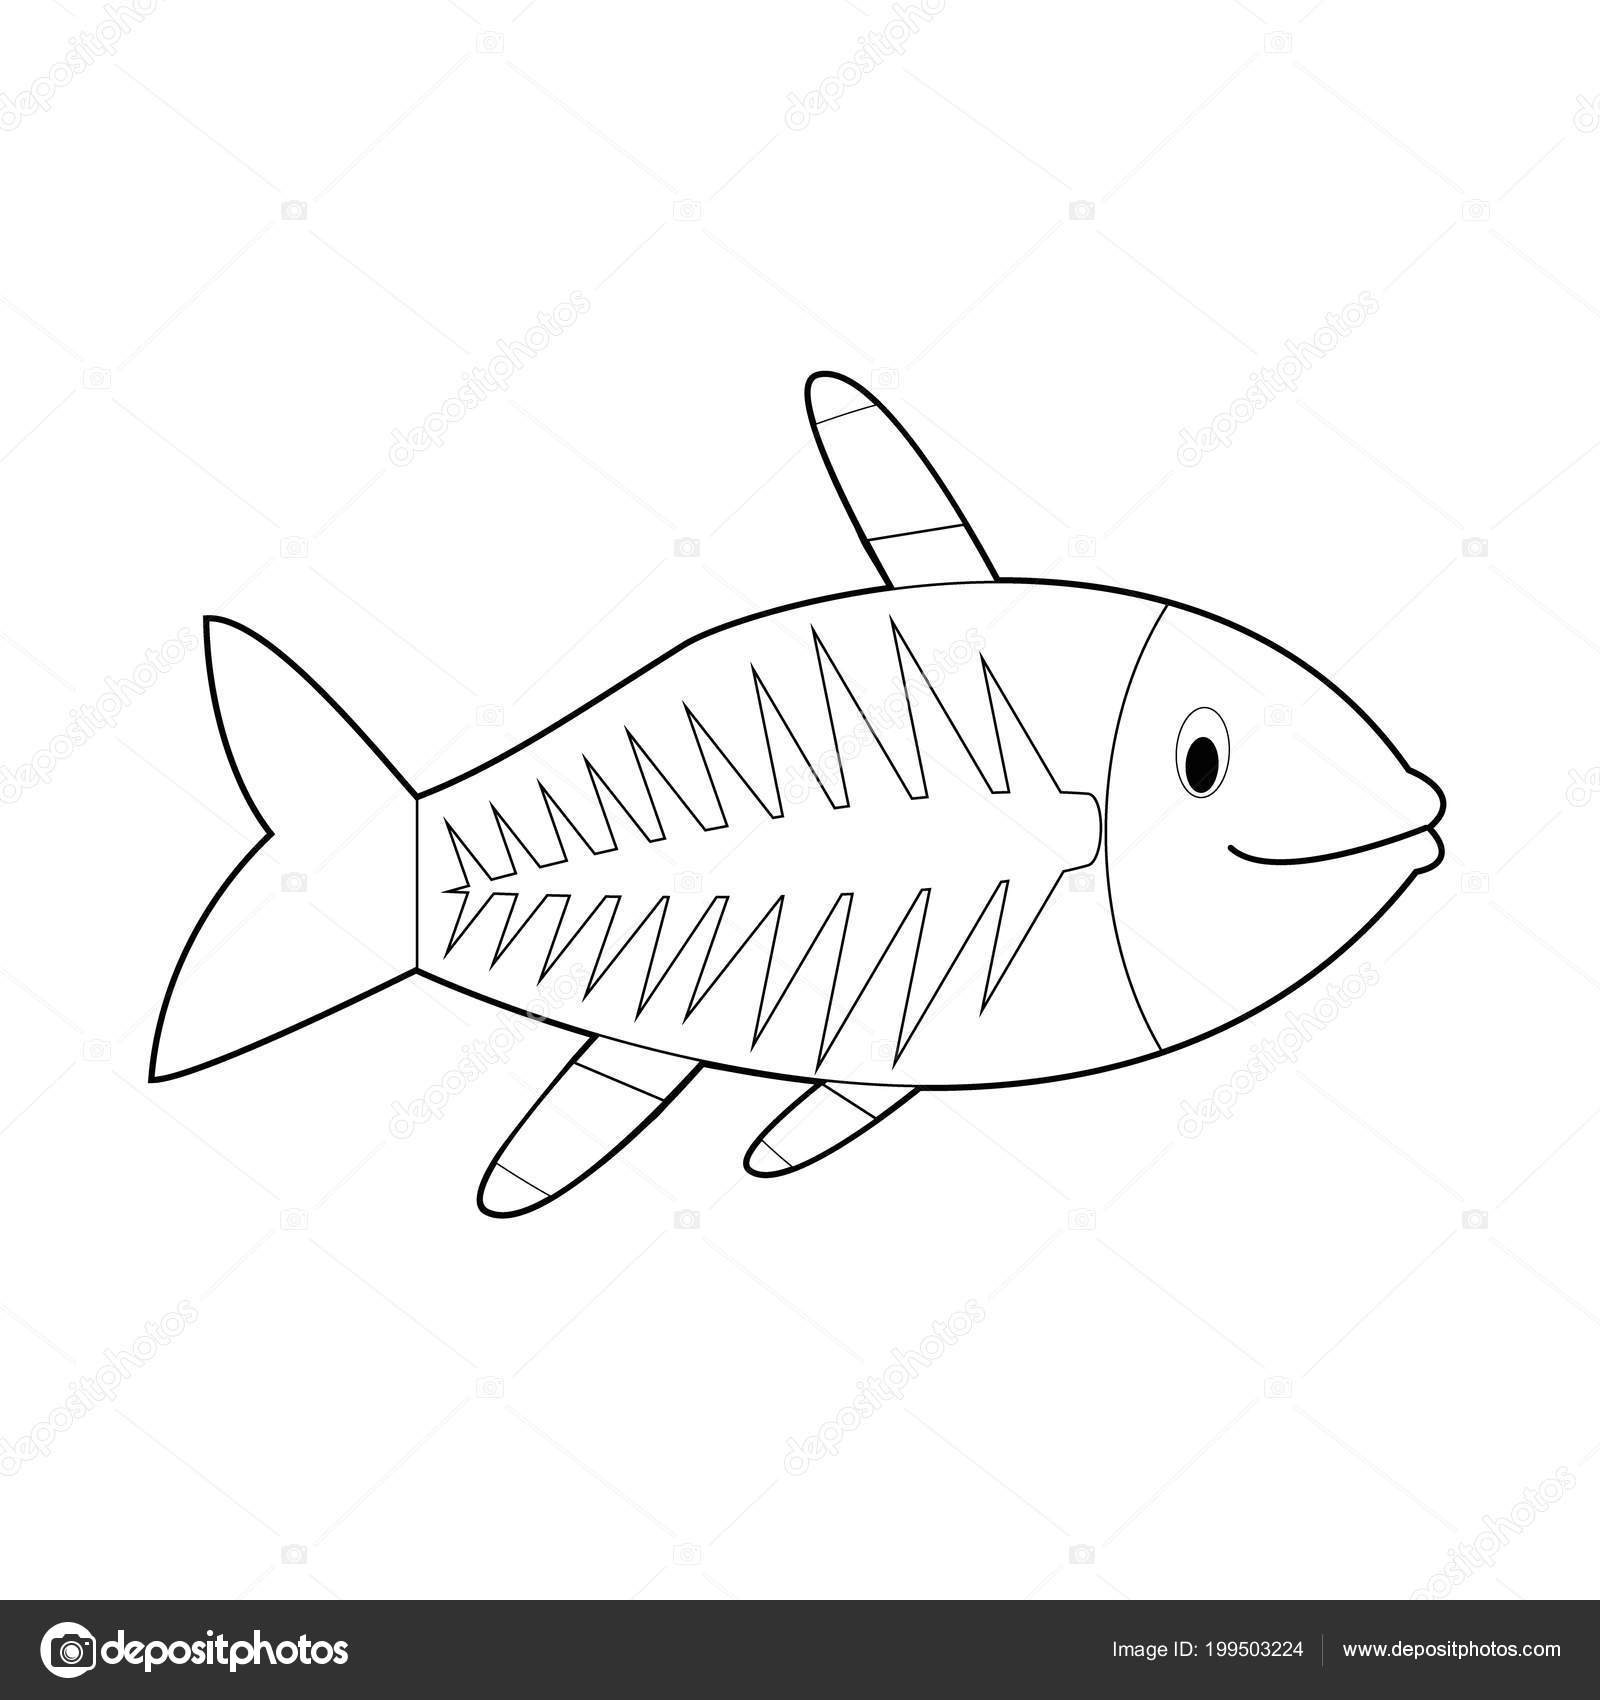 Easy coloring drawings animals little kids ray fish stock vector